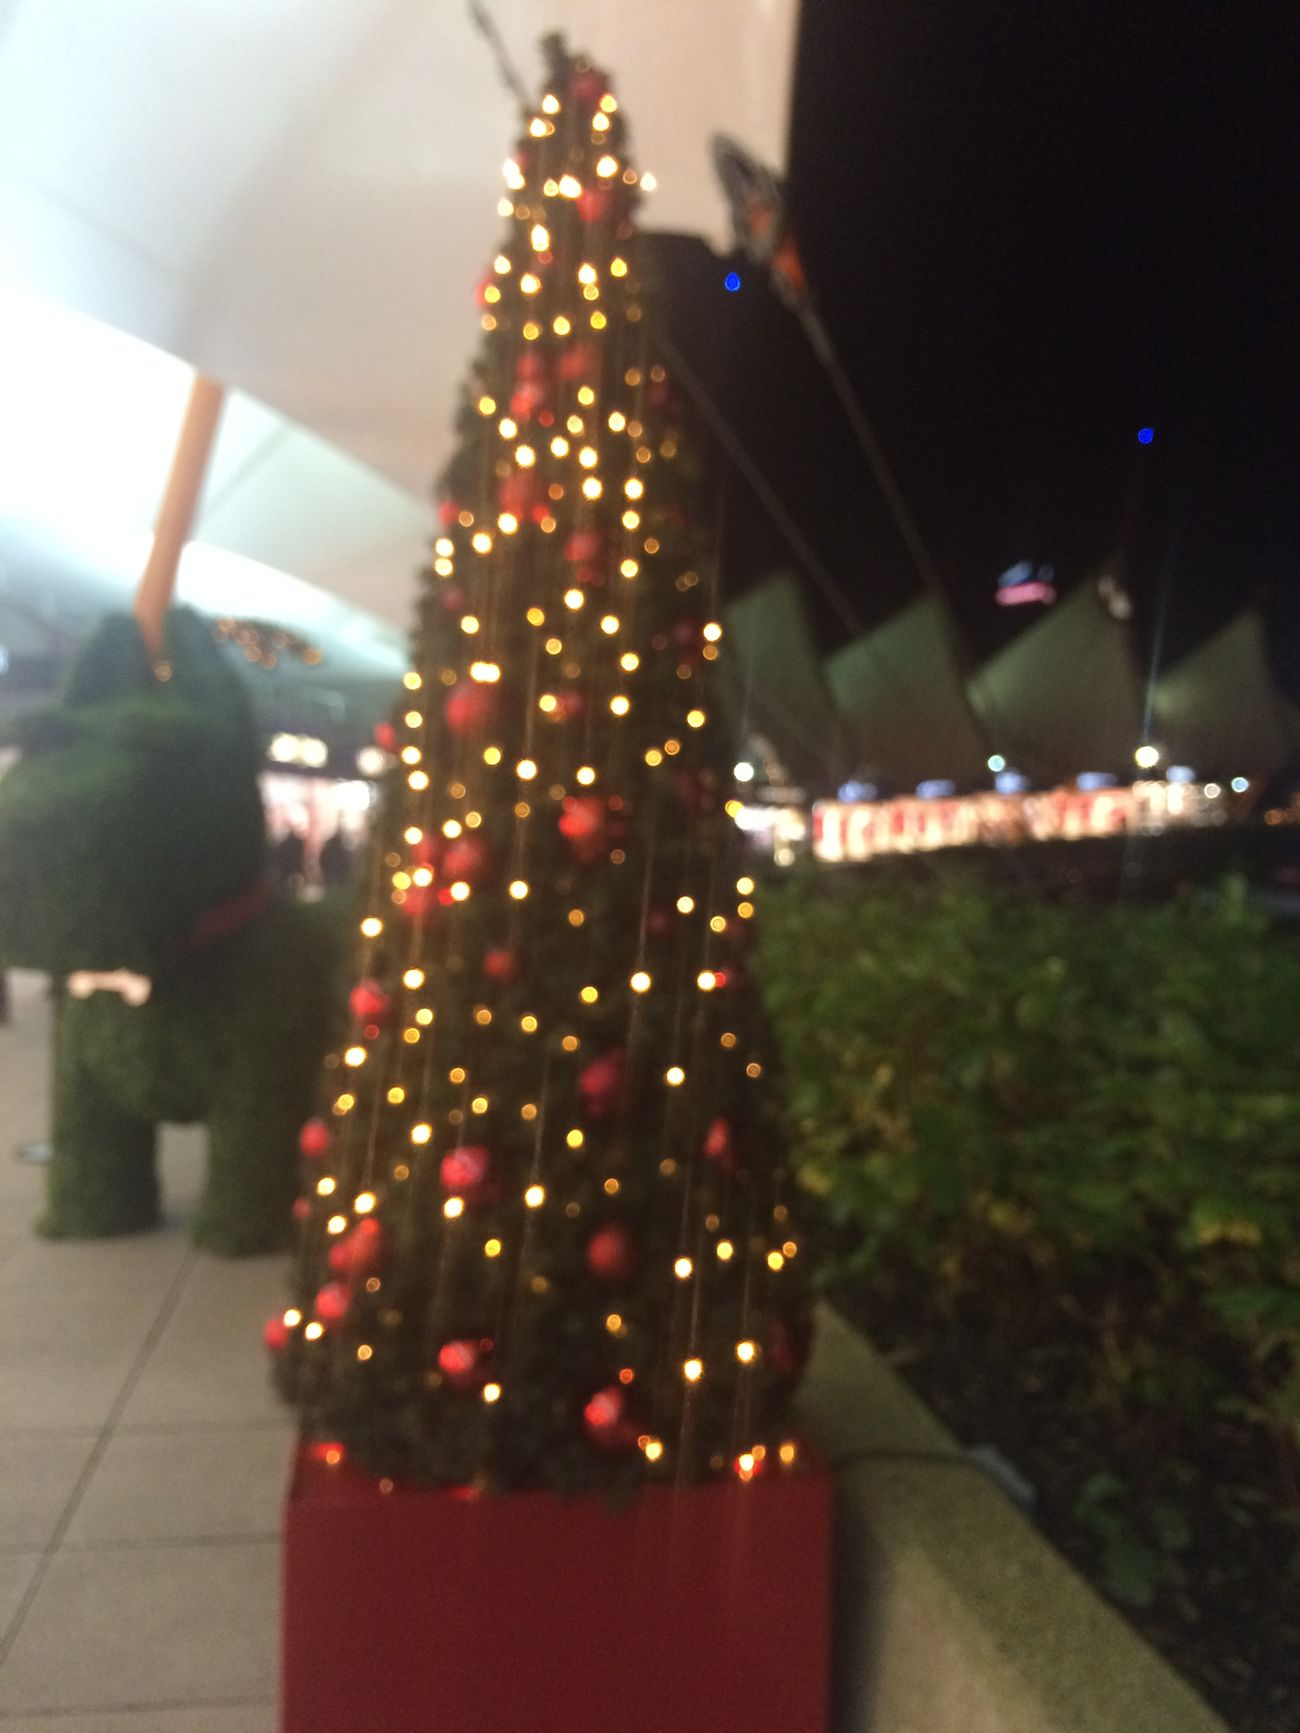 Shopping Mall Christmas Decorations Ashford Outlet Christmas Time Christmastree Christmas Lights Christmastime Christmas Tree